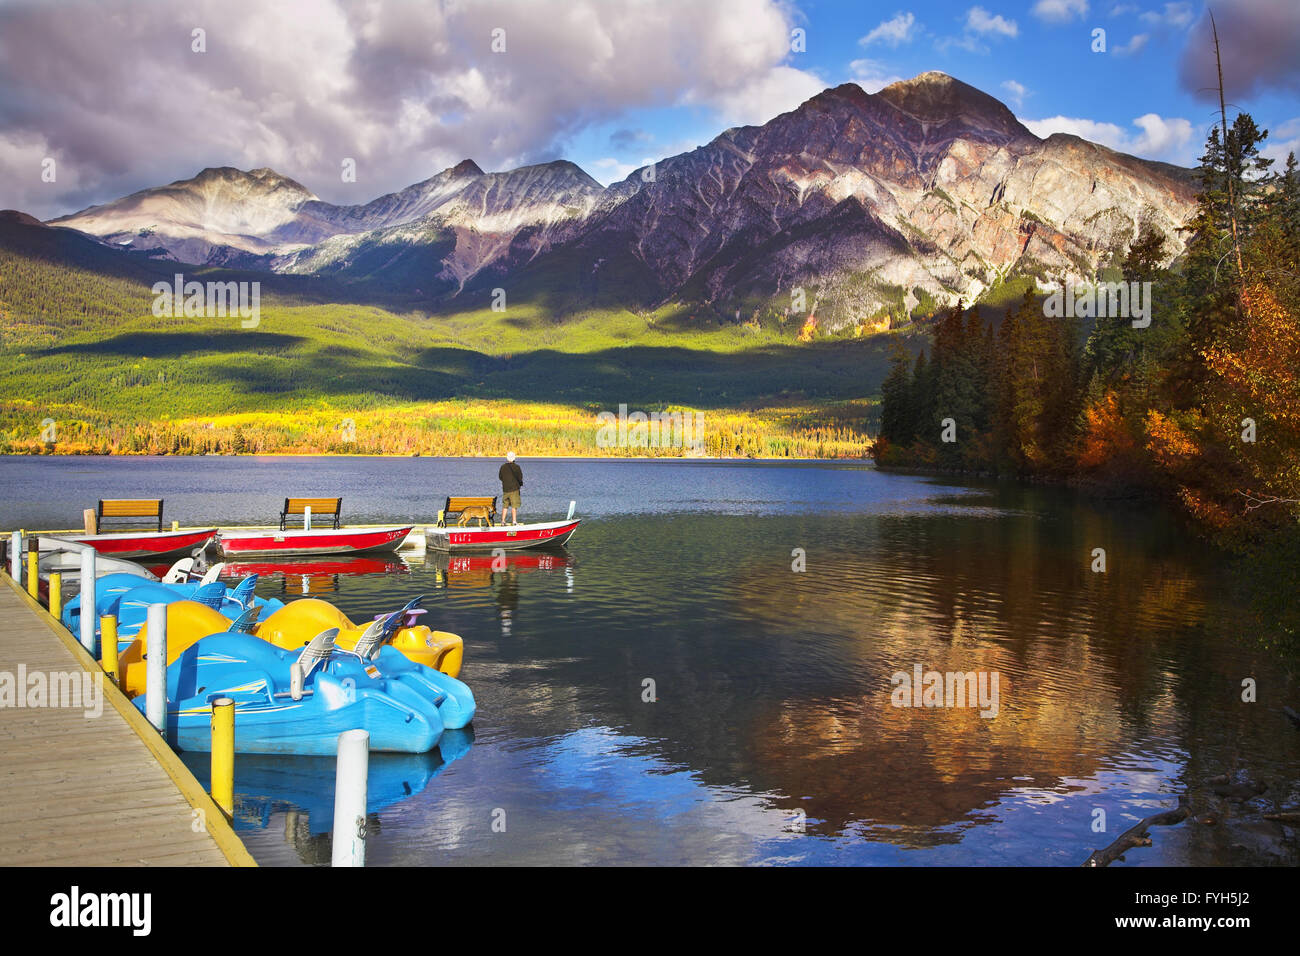 Magnificent morning on Pyramid lake in Canada Stock Photo: 103025162